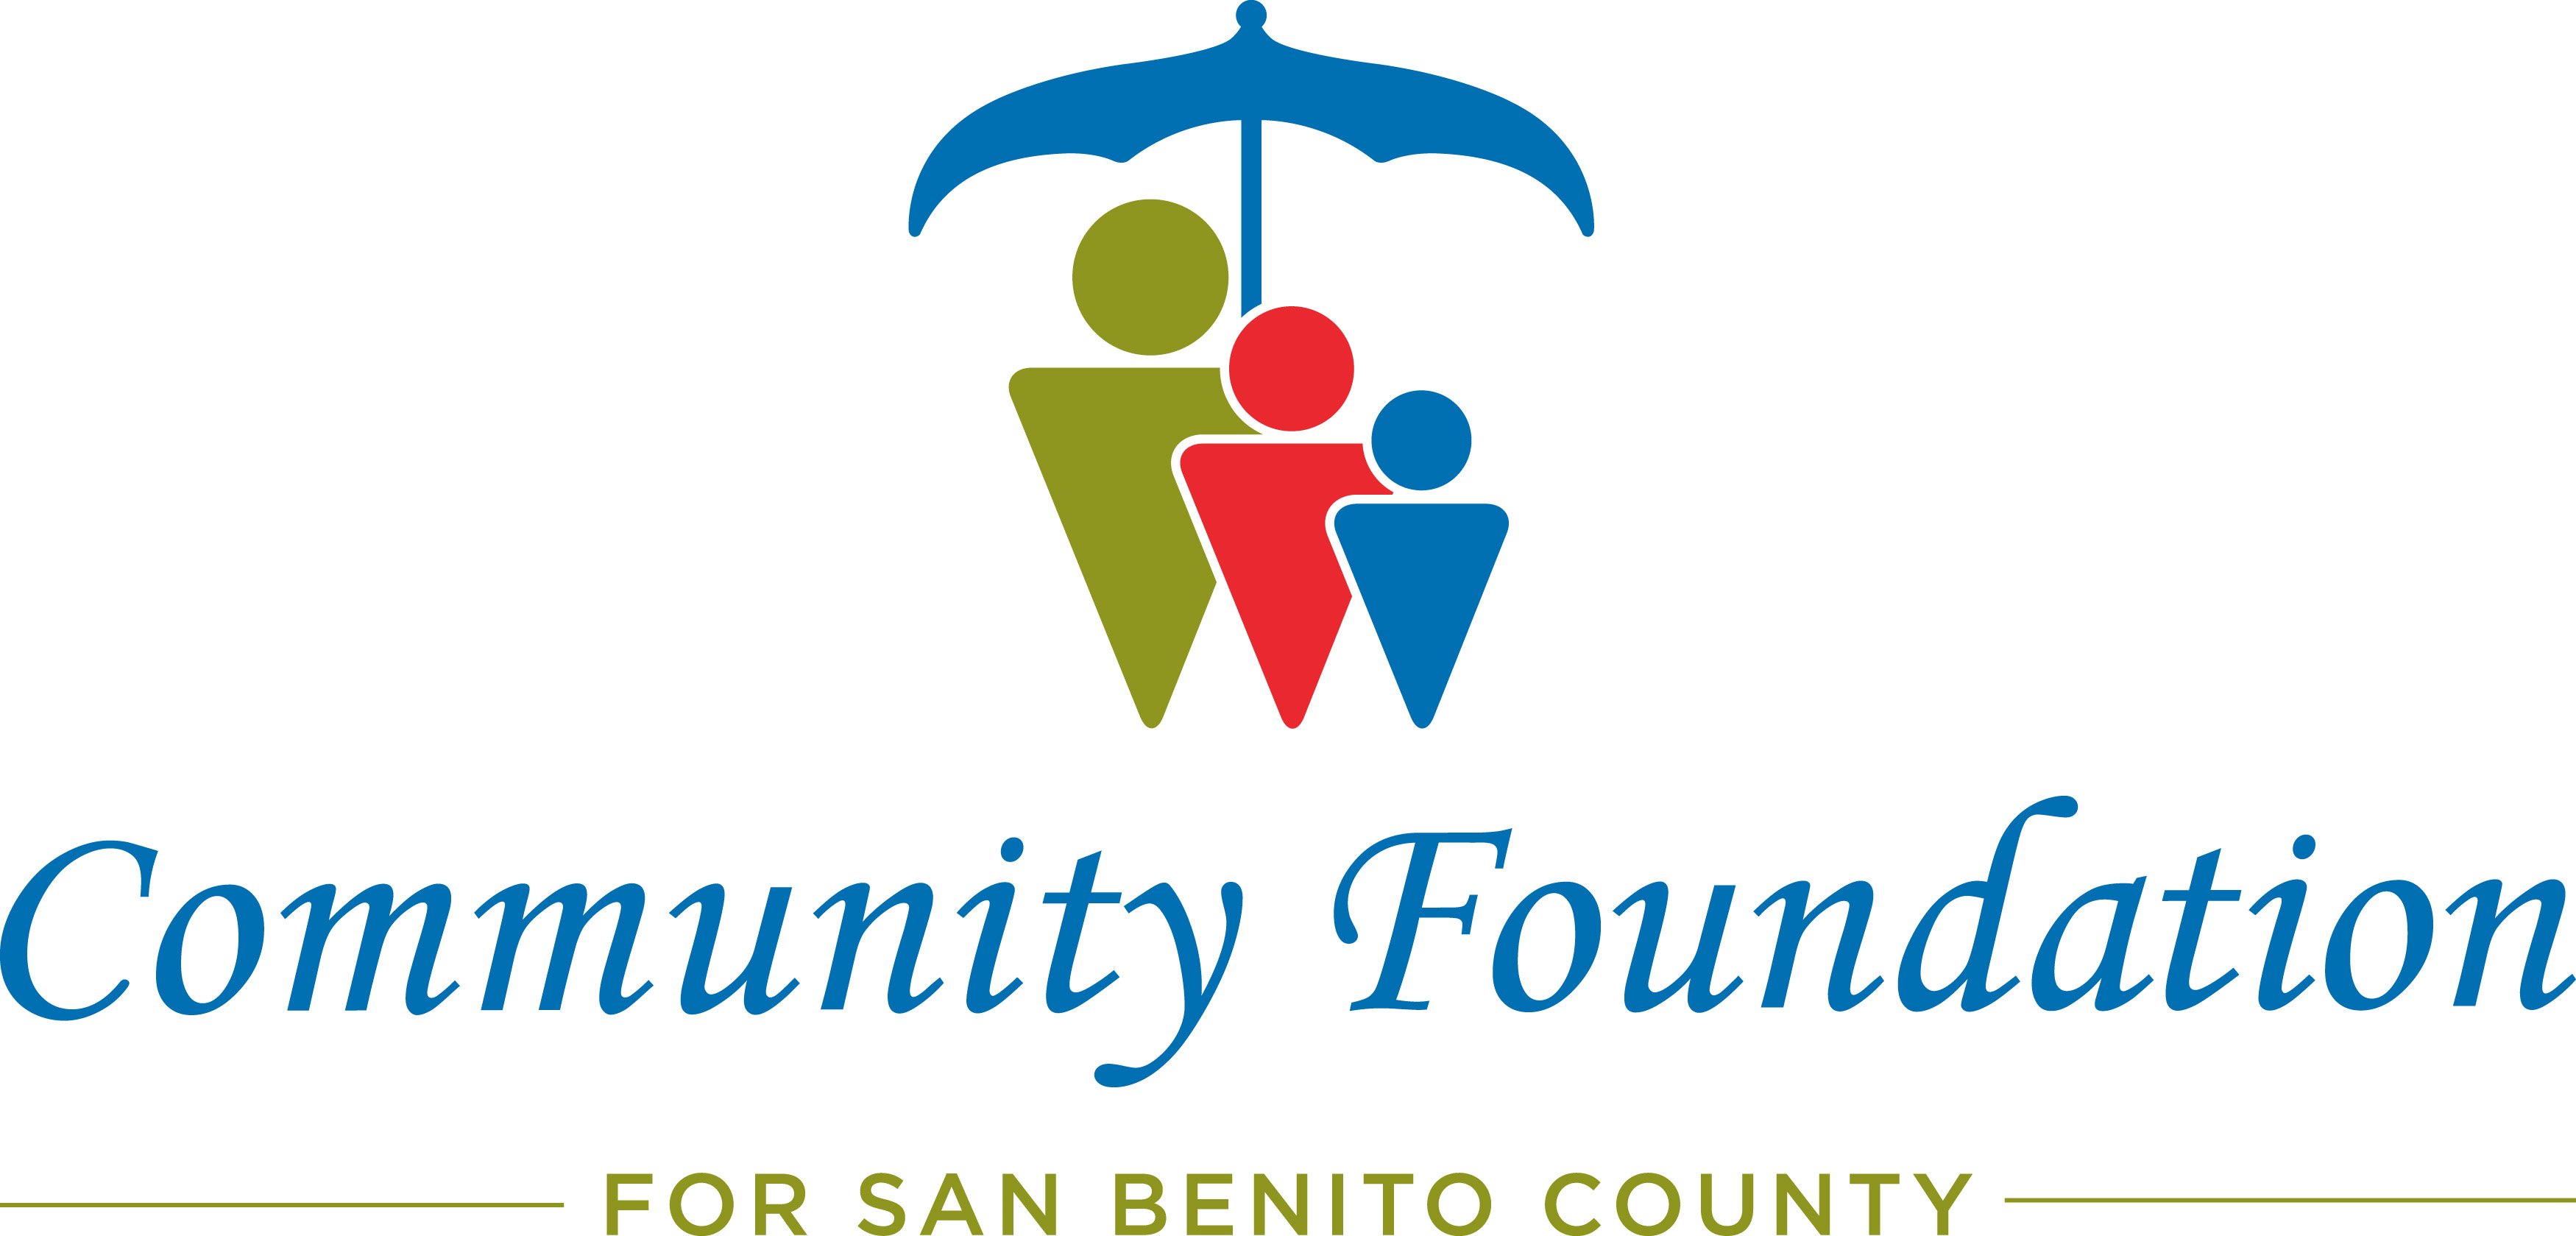 Community Foundation San Benito